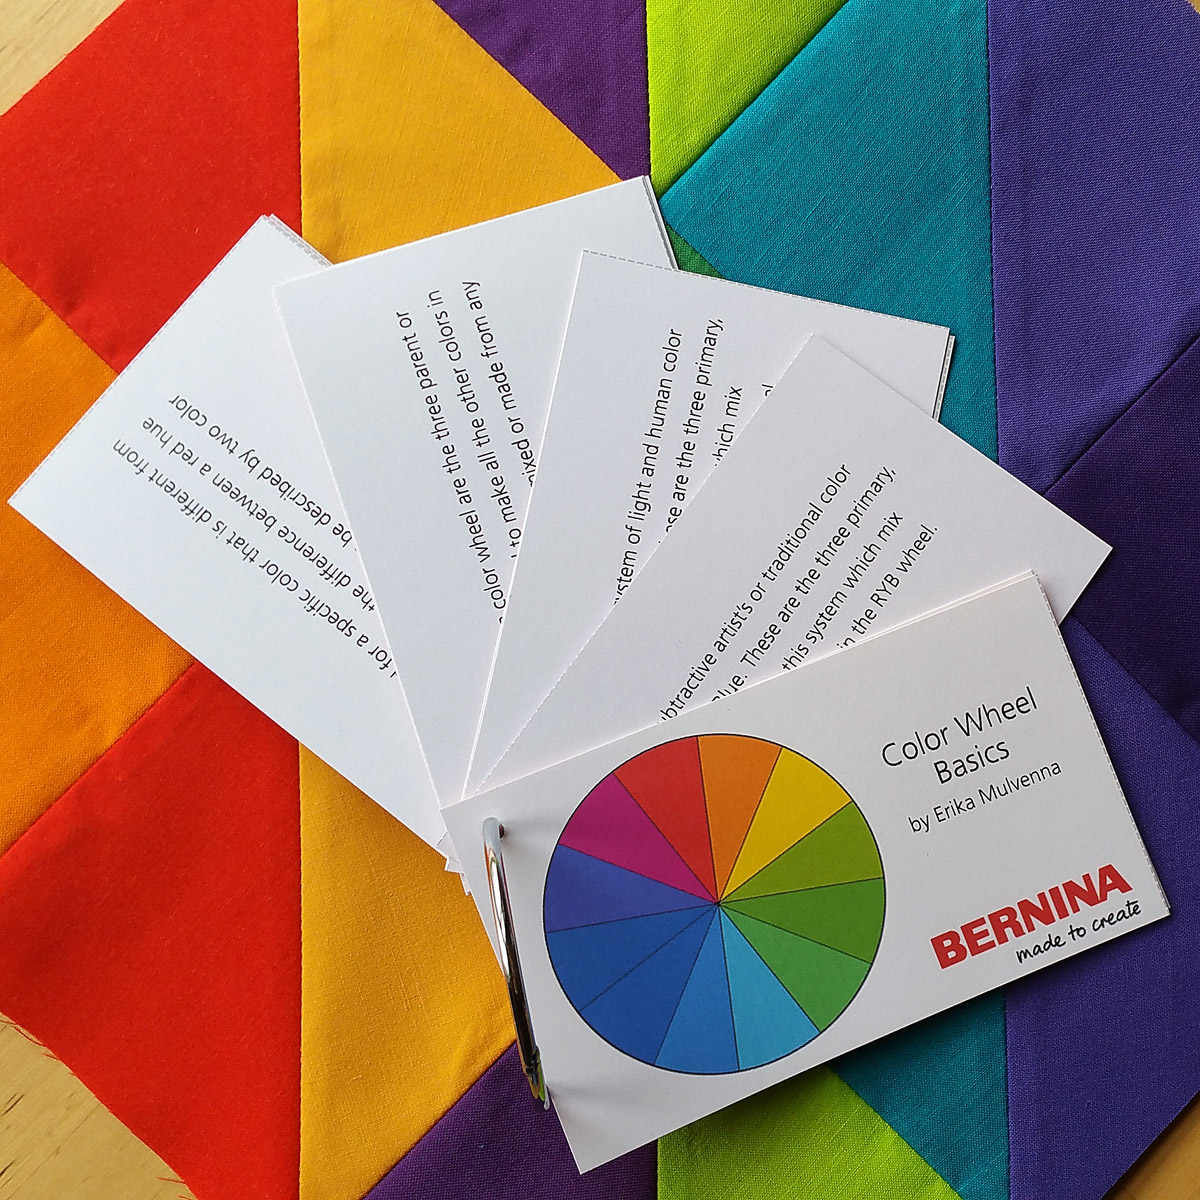 Color your card get well - In The Color Wheel Basics Post You Can Learn What A Color Wheel Is And Get A Free Downloadable Set Of Color Cards To Learn Basic Color Theory Terms